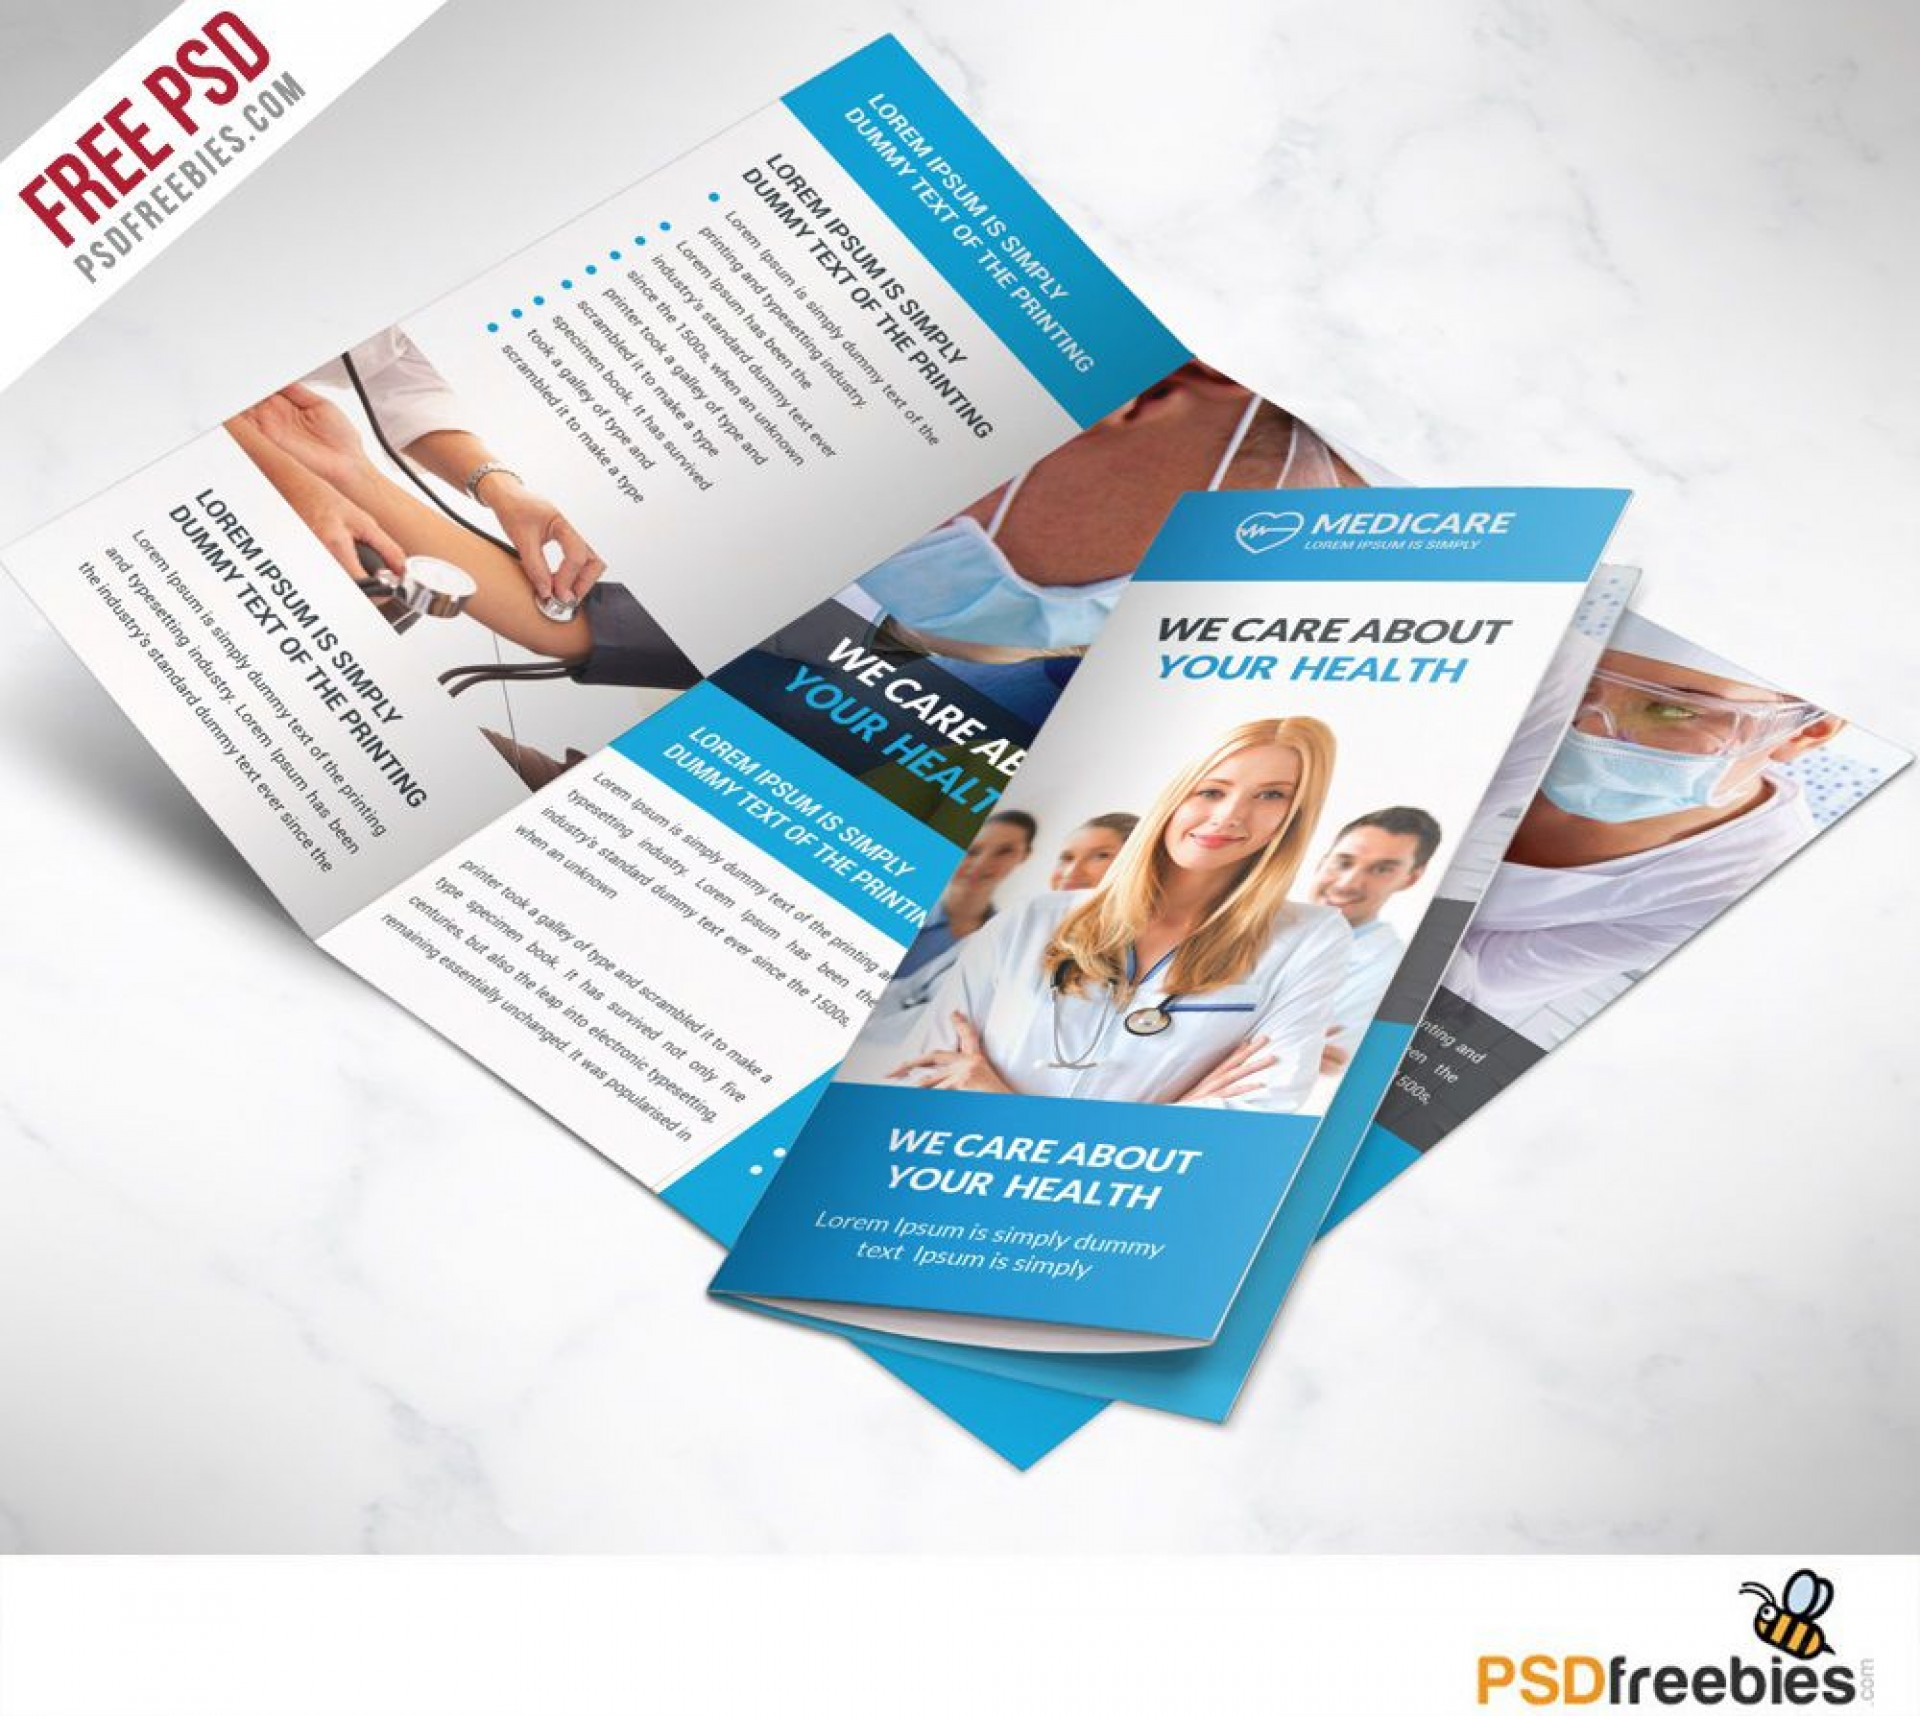 007 Unforgettable Photoshop Brochure Design Template Free Download High Def 1920